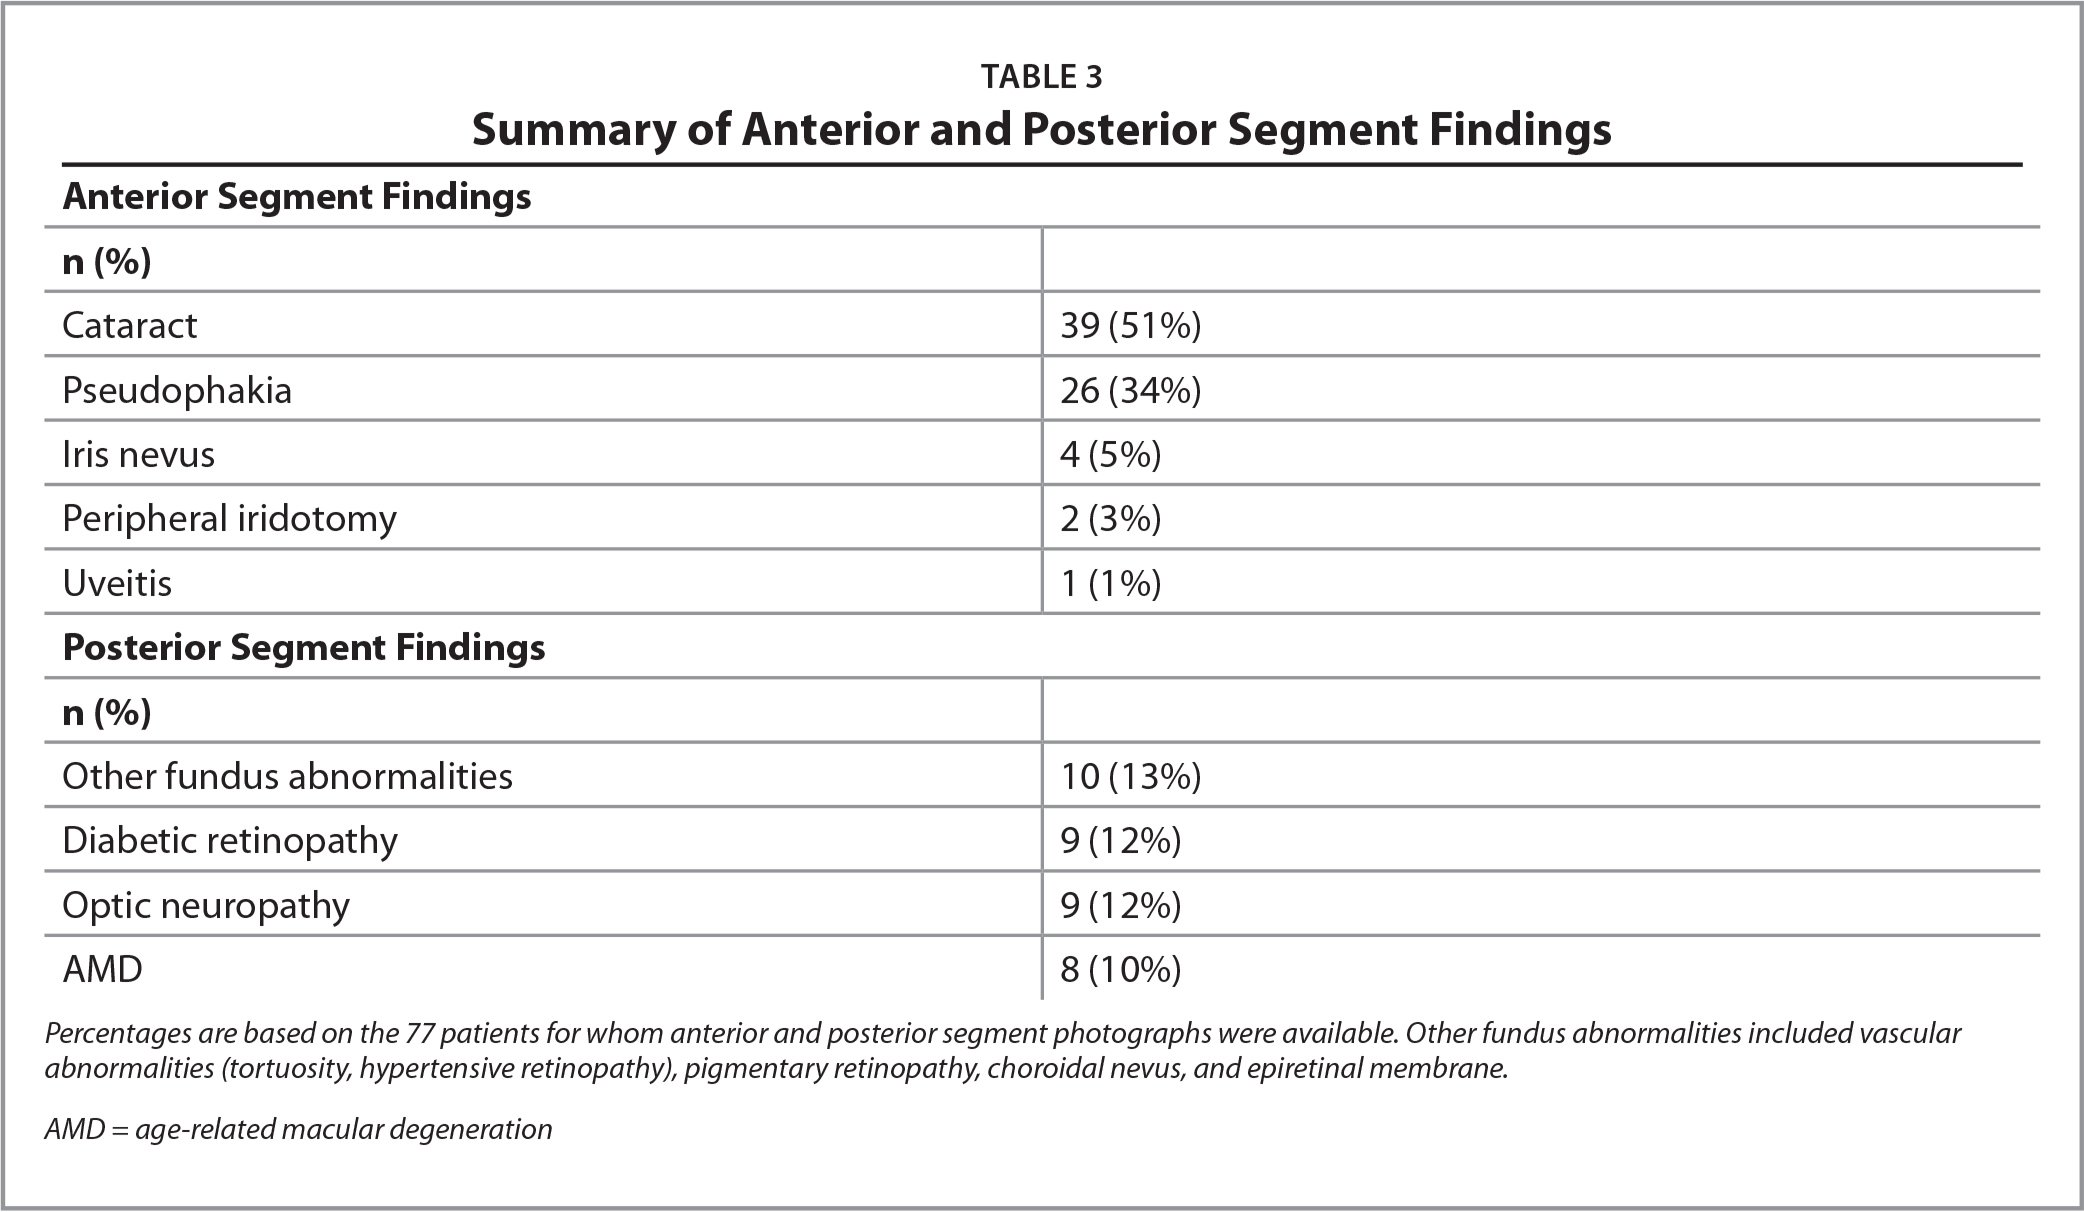 Summary of Anterior and Posterior Segment Findings